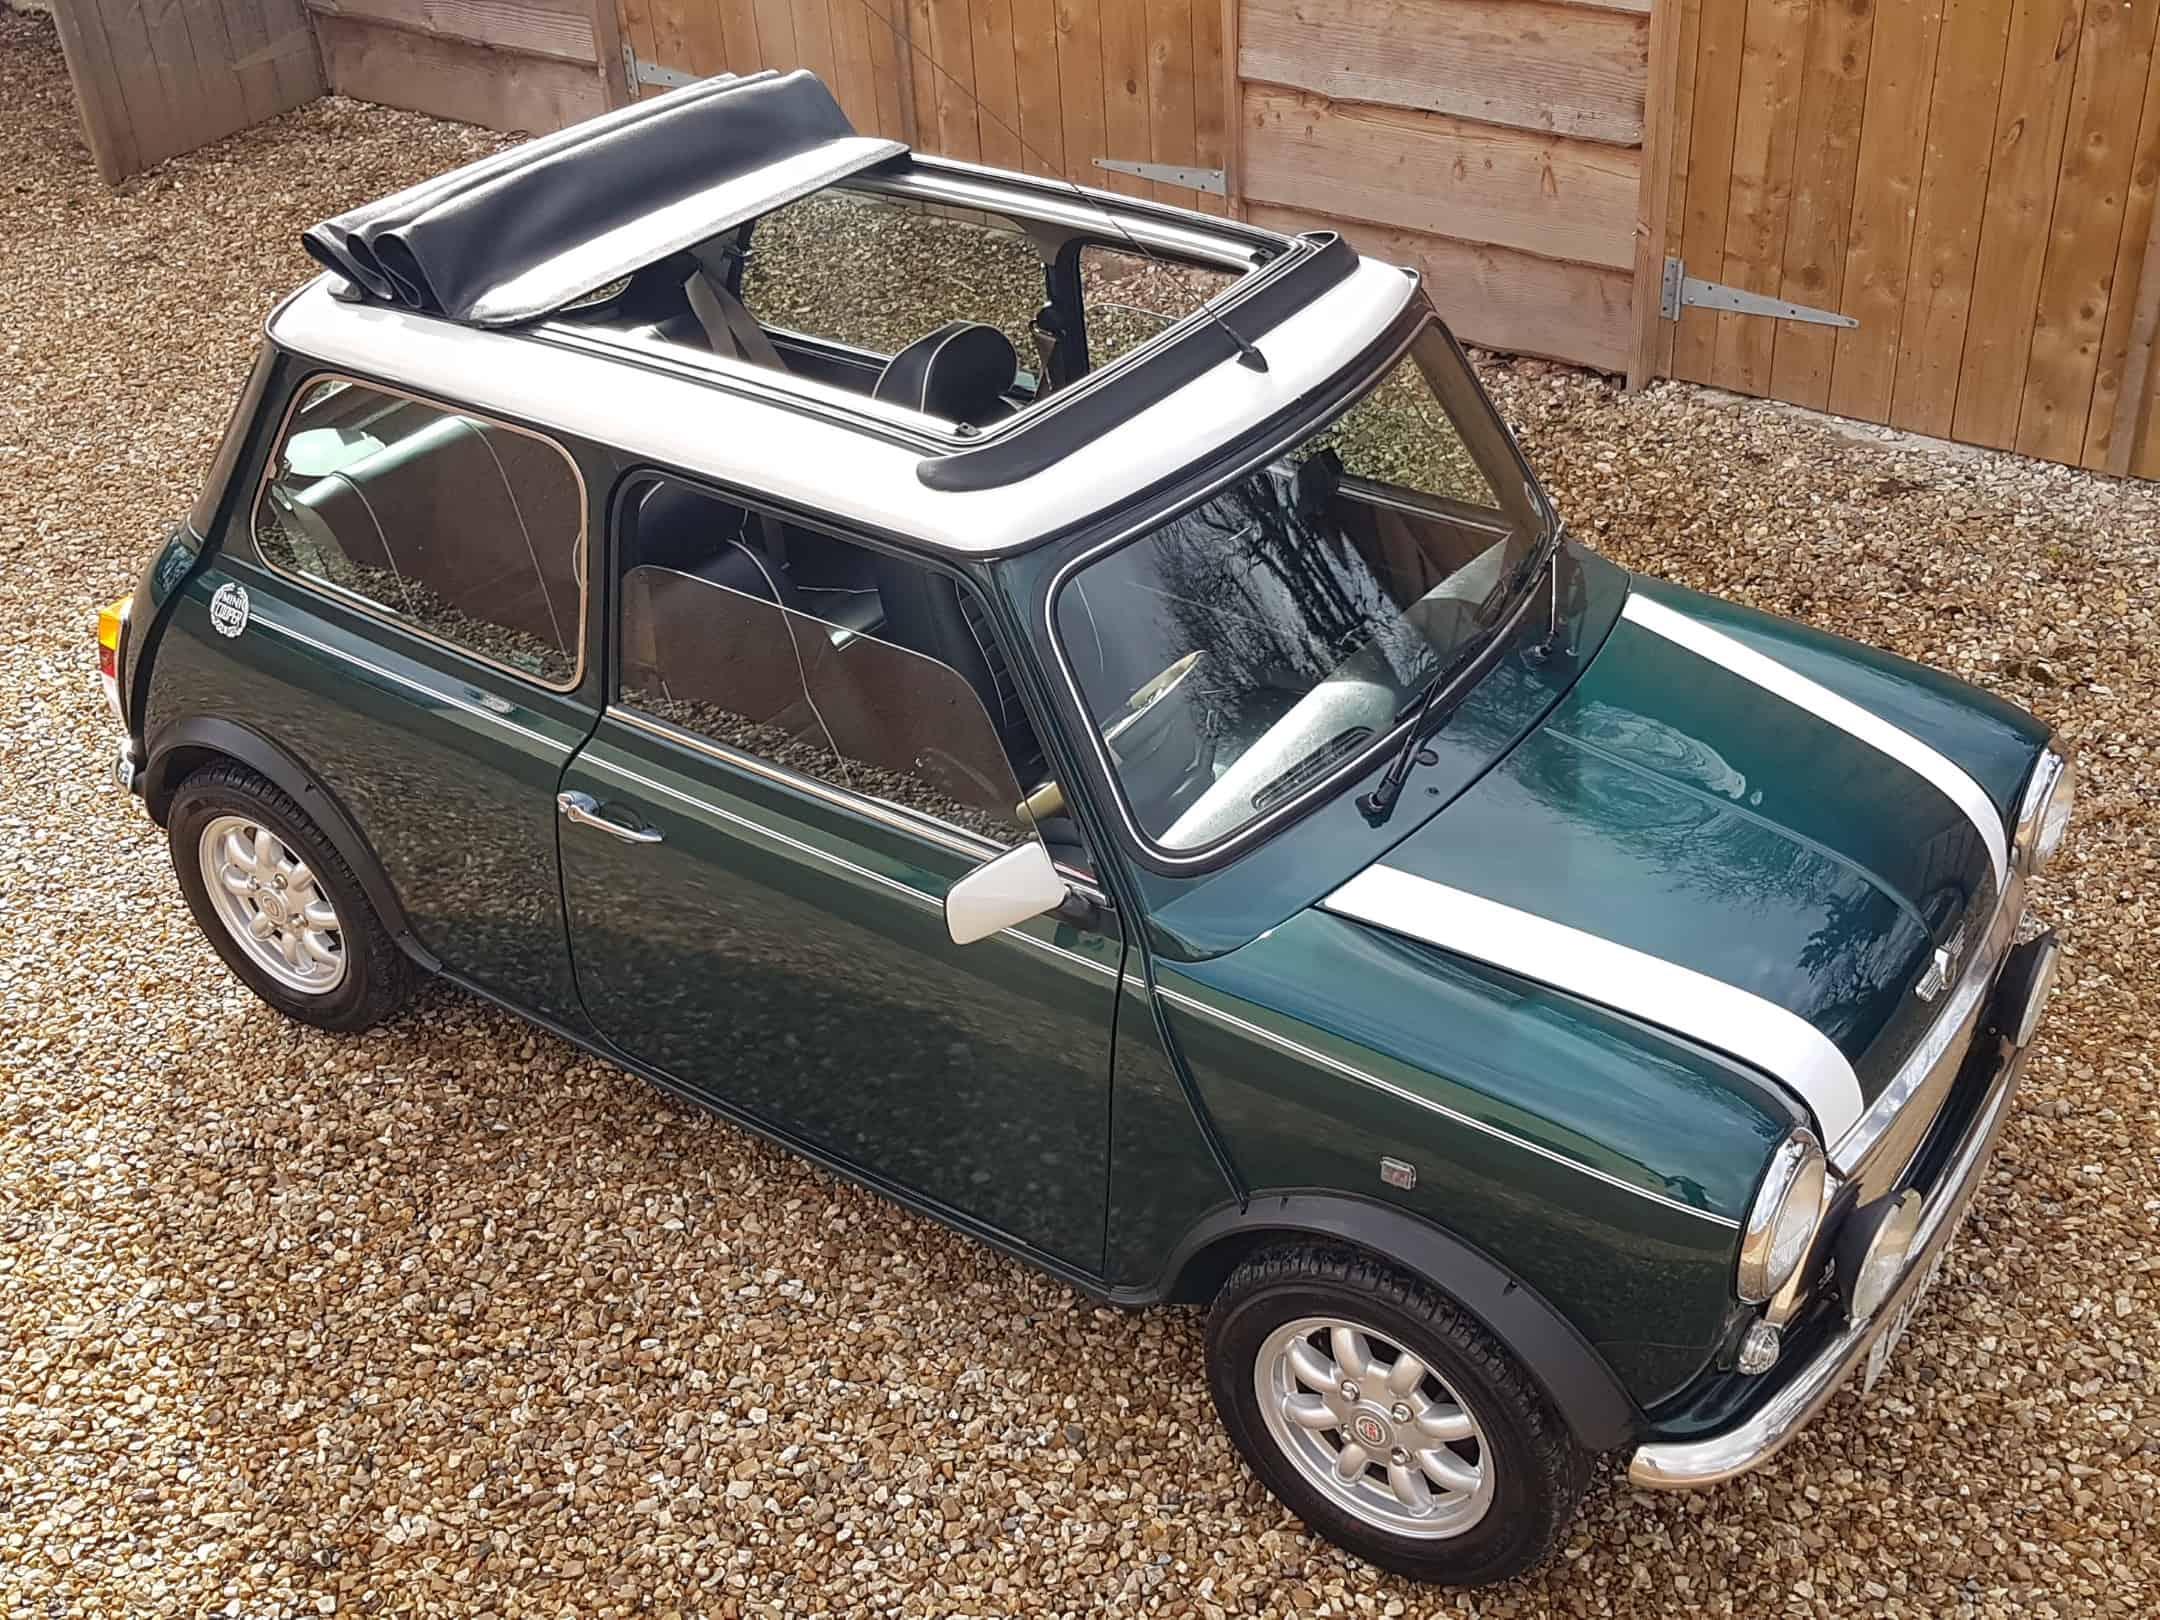 ** NOW SOLD ** 1997 Rover Mini Cooper On 14300 Miles From New